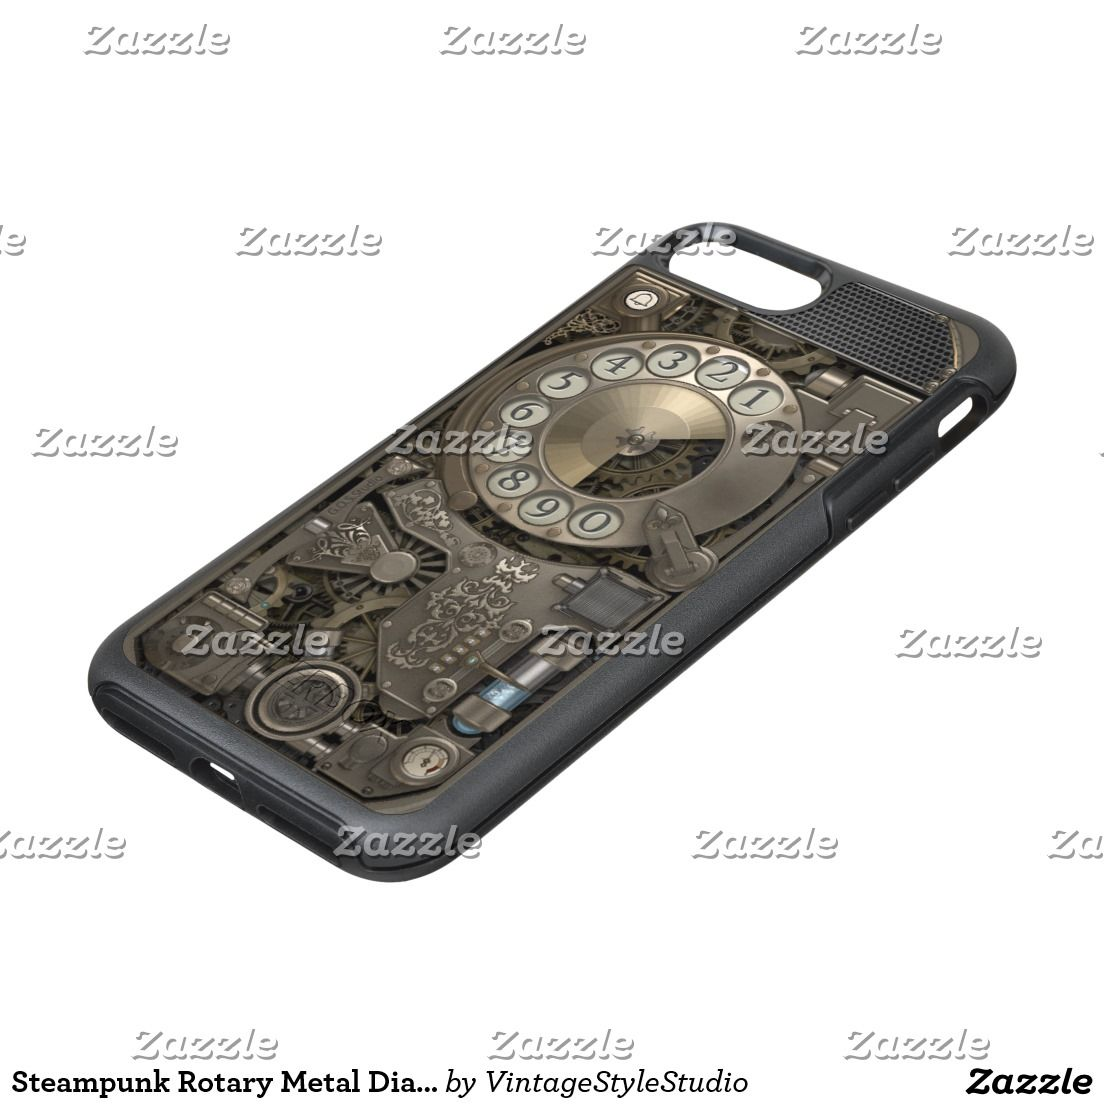 medium resolution of steampunk rotary metal dial phone otterbox symmetry iphone 7 plus case steampunk samsung iphone cases s6 s7 ipad samsunggalaxys victorian